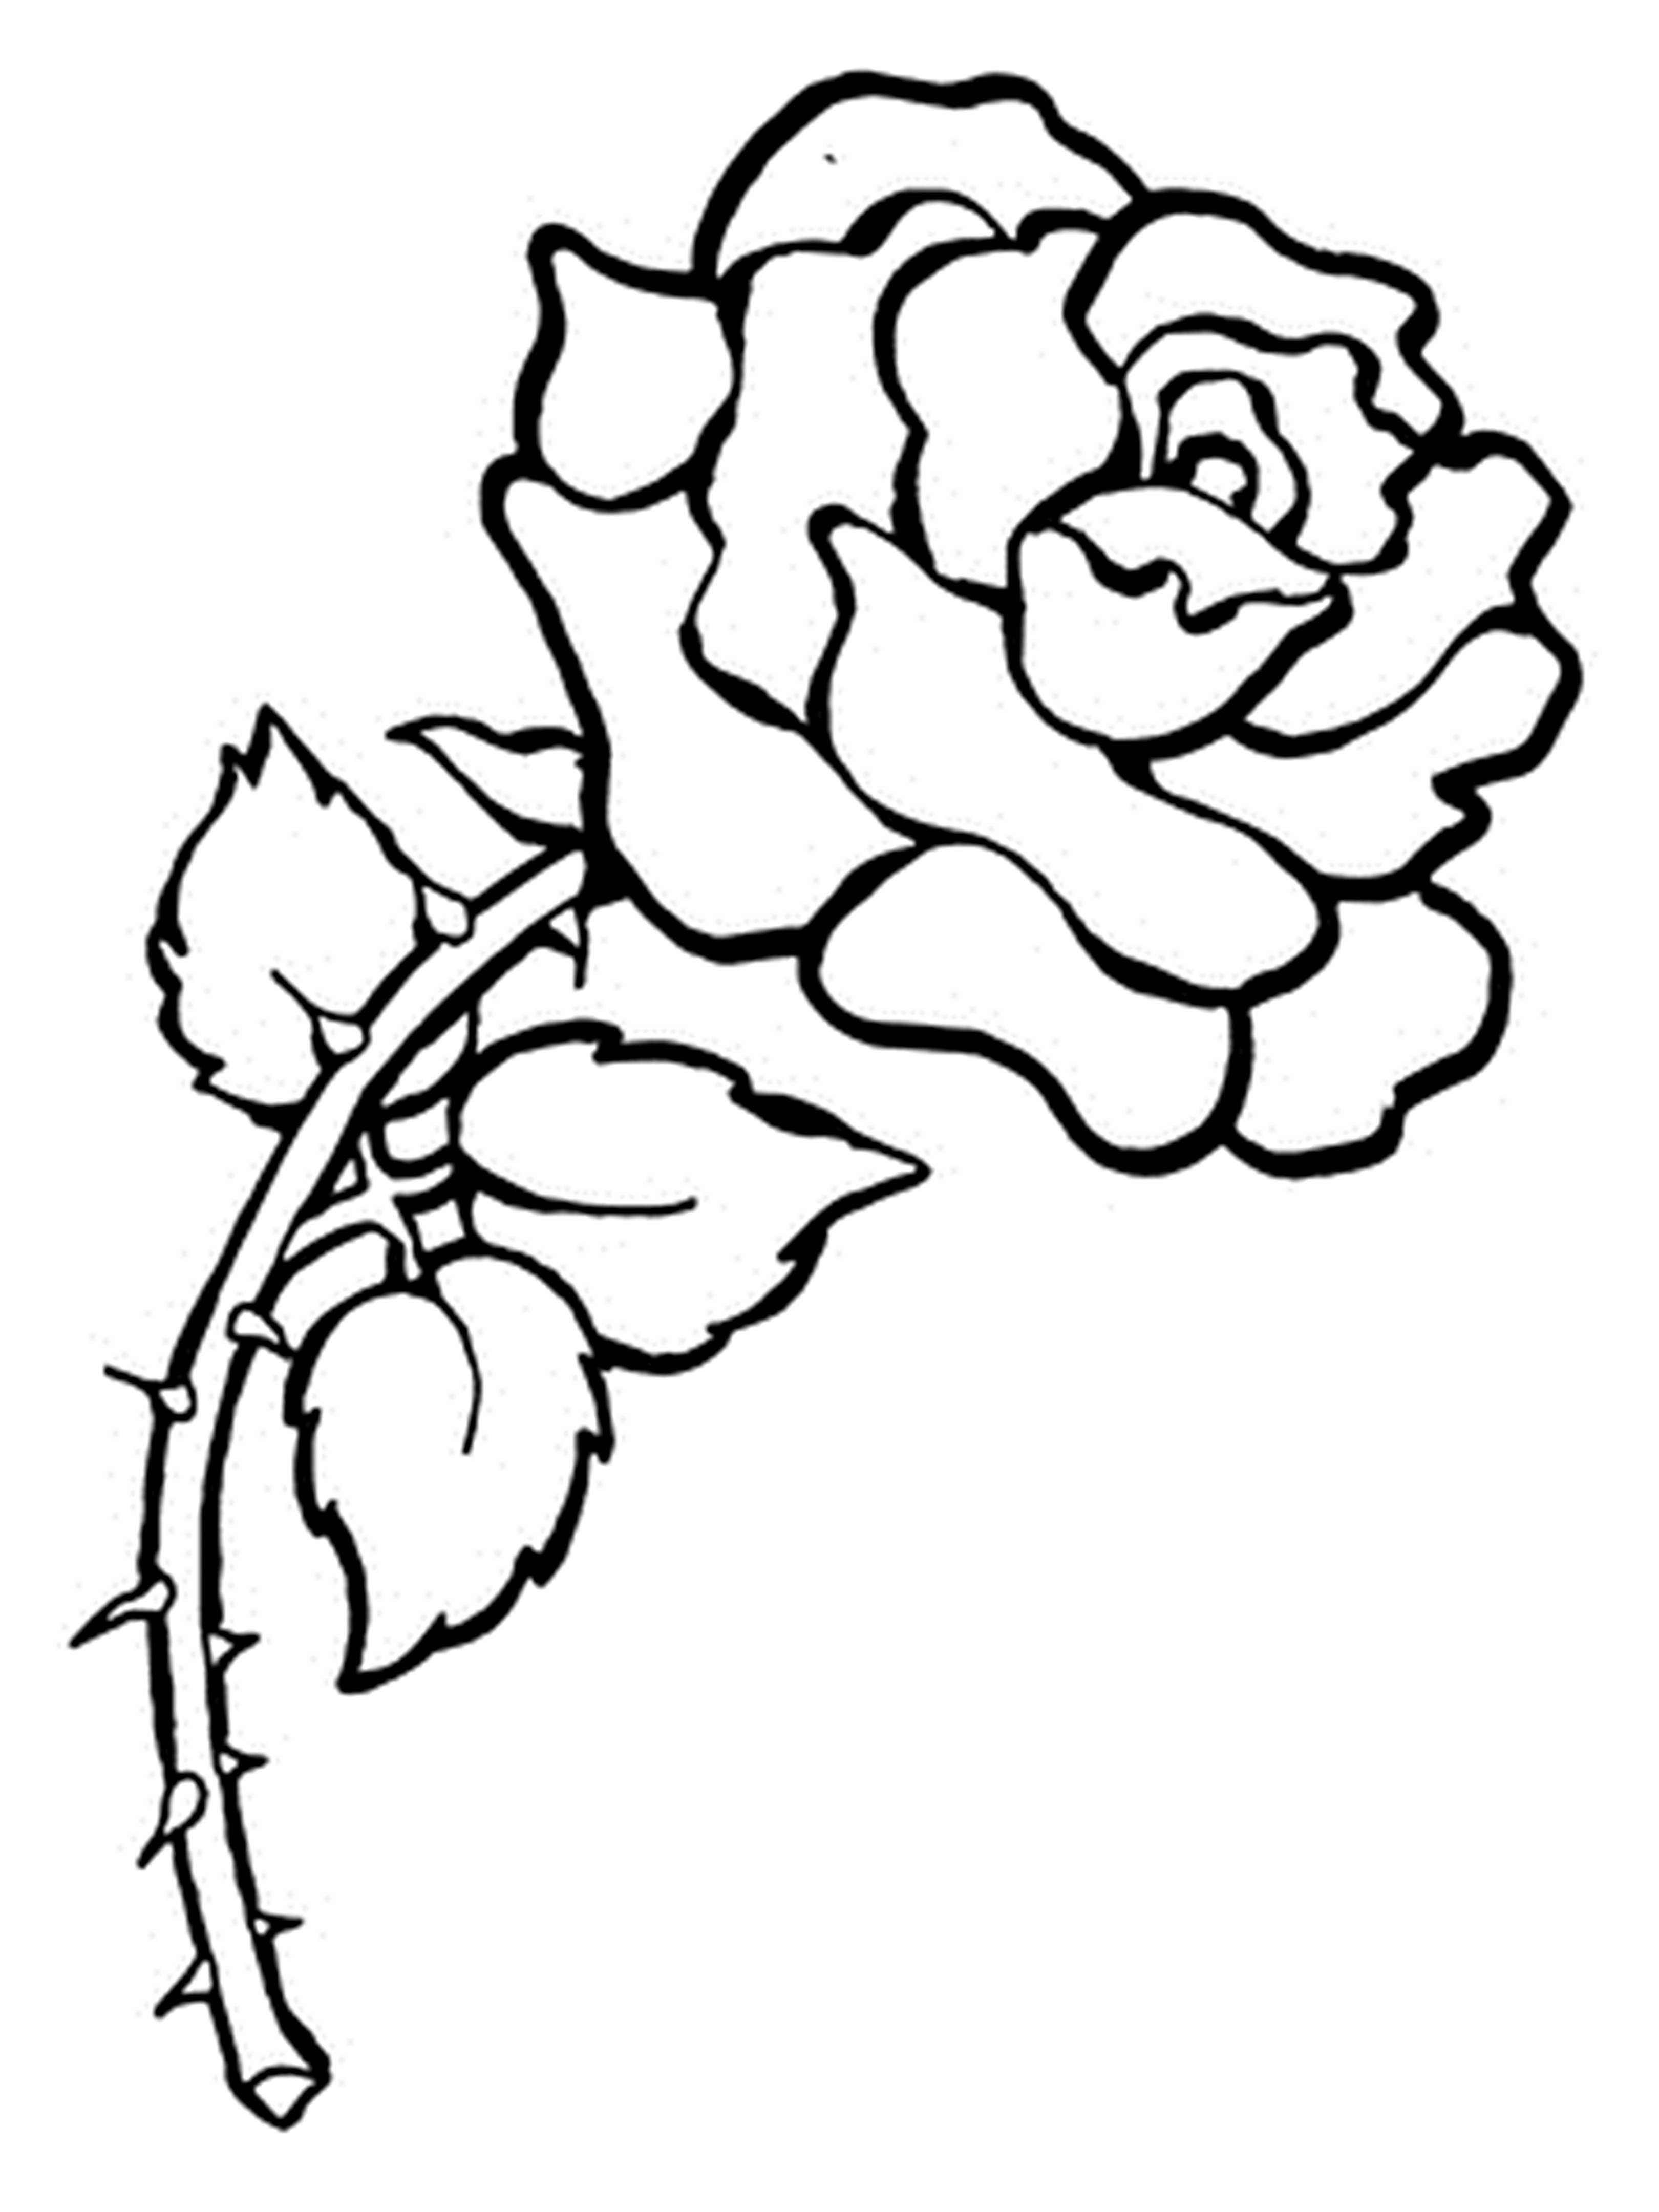 pictures of flowers to color free printables free printable flower coloring pages for kids best color of free to pictures flowers printables